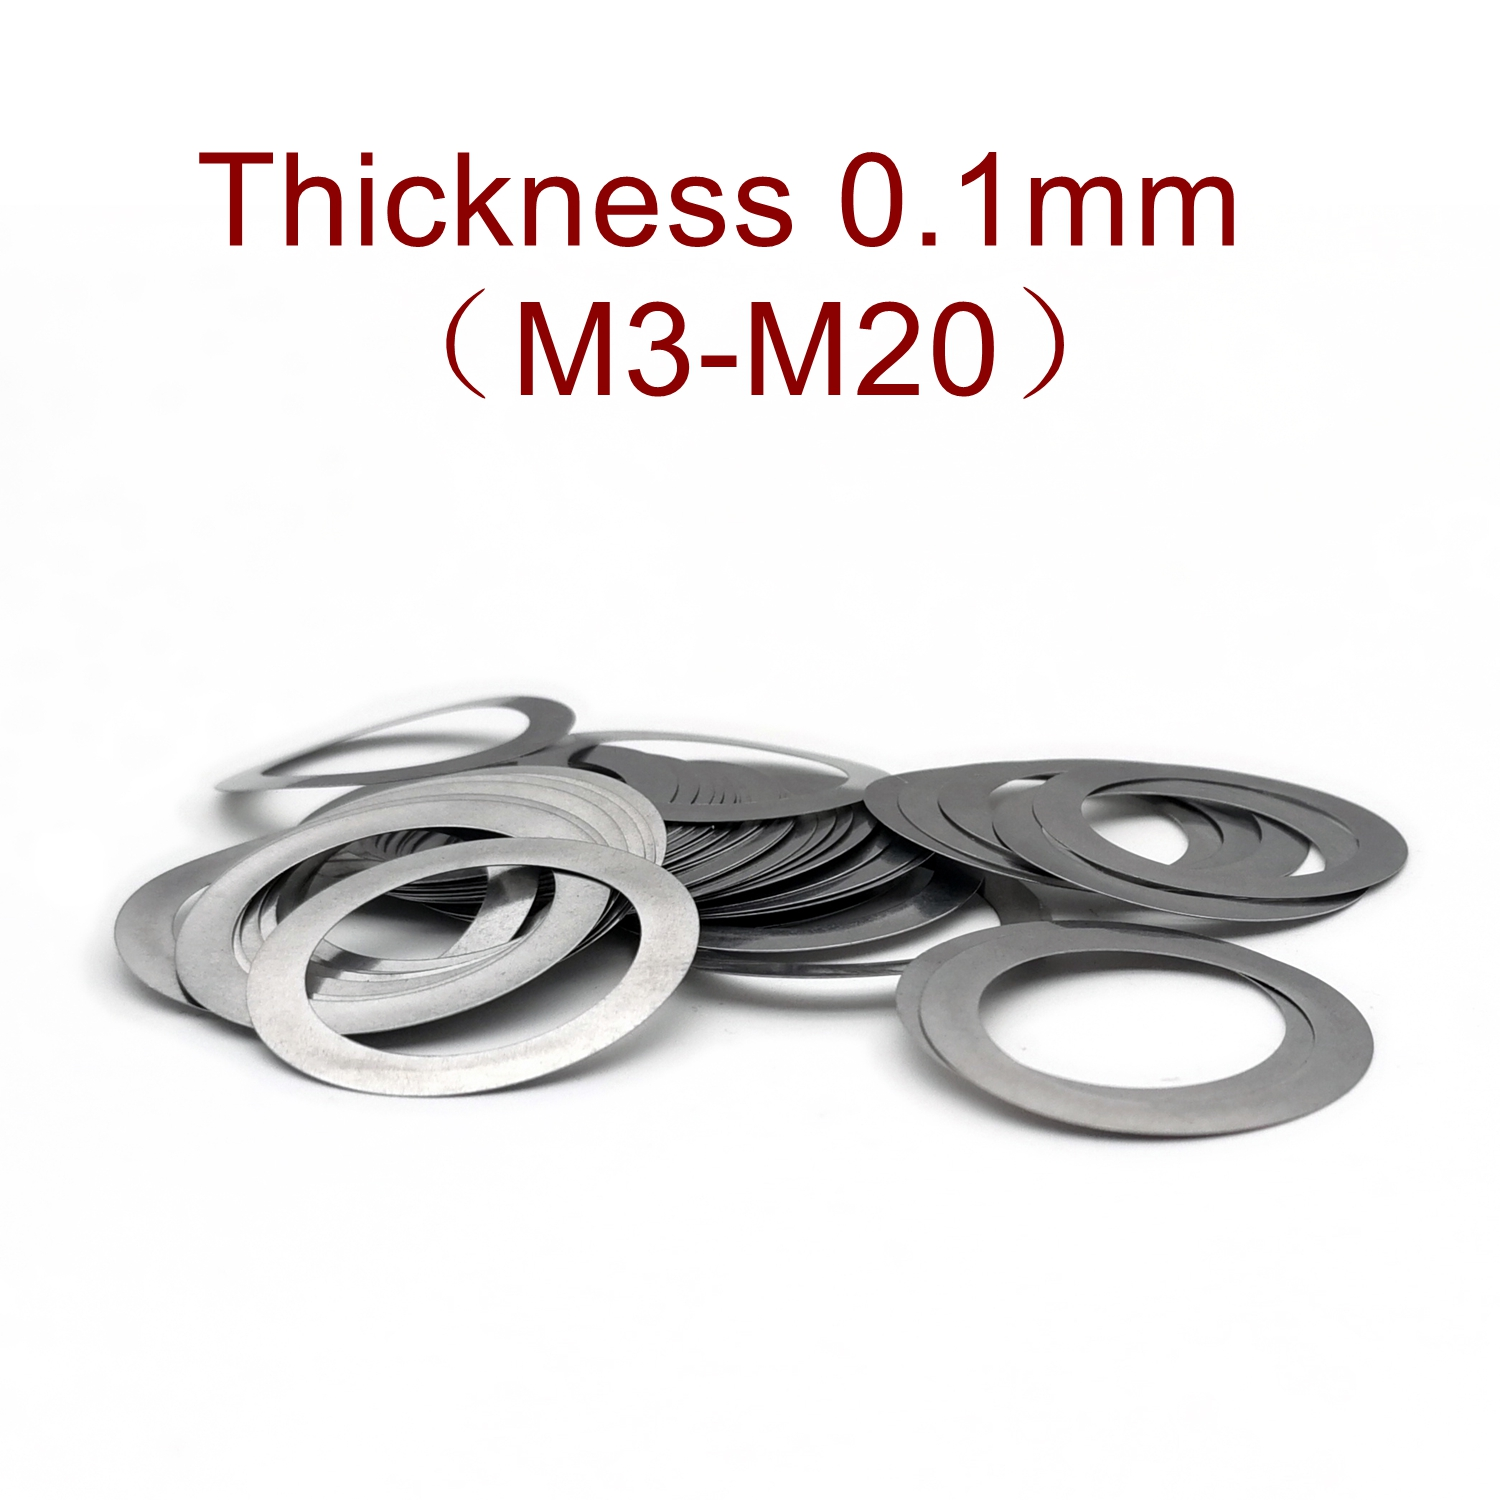 Thickness 0.1mm Stainless steel Flat Washer Ultra thin gasket High precision Adjusting gasket M3-M20 Thin shim SUS304